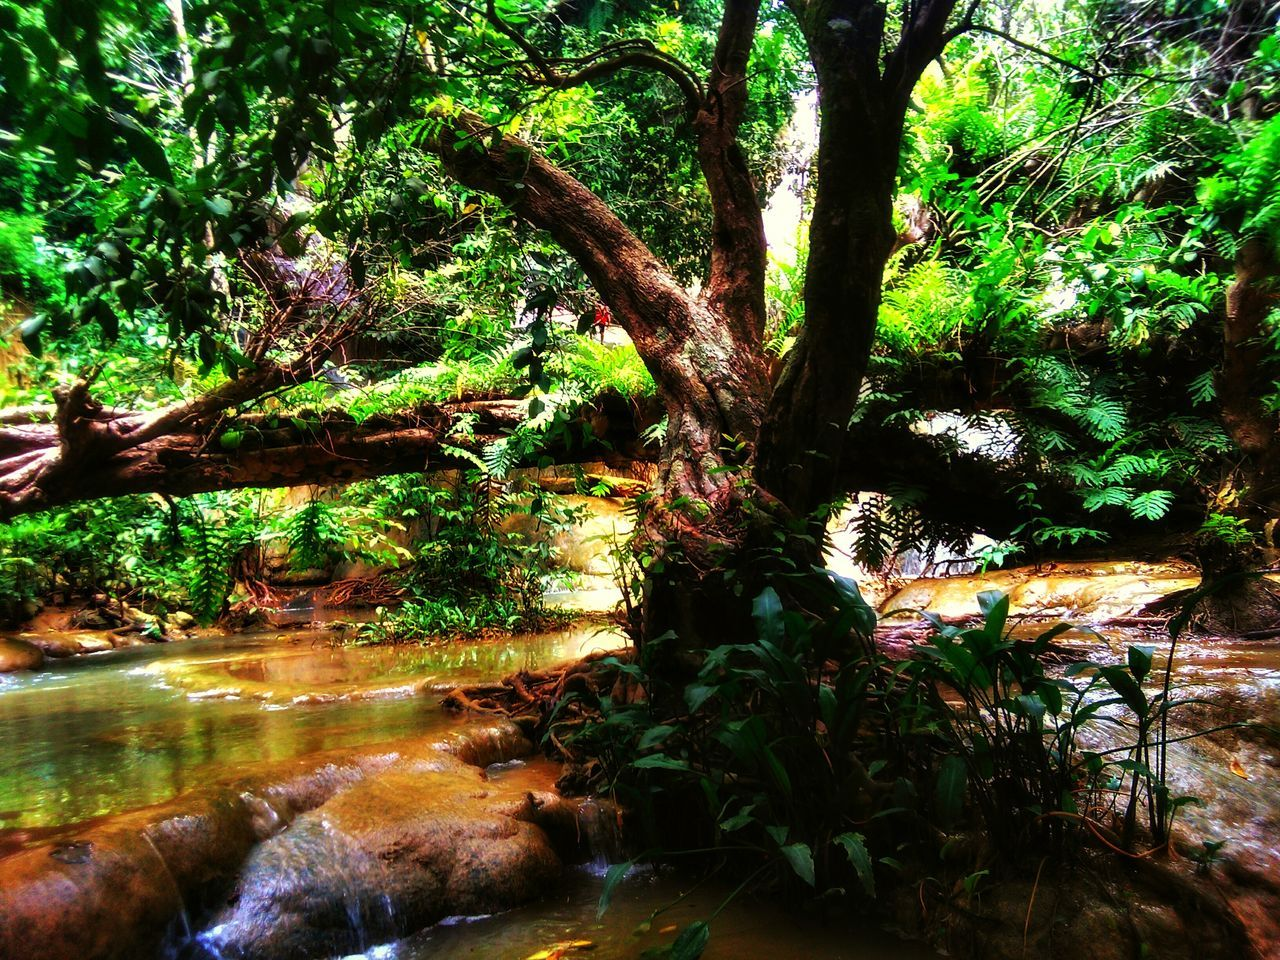 tree, growth, nature, outdoors, water, beauty in nature, tree trunk, day, plant, no people, flower, branch, freshness